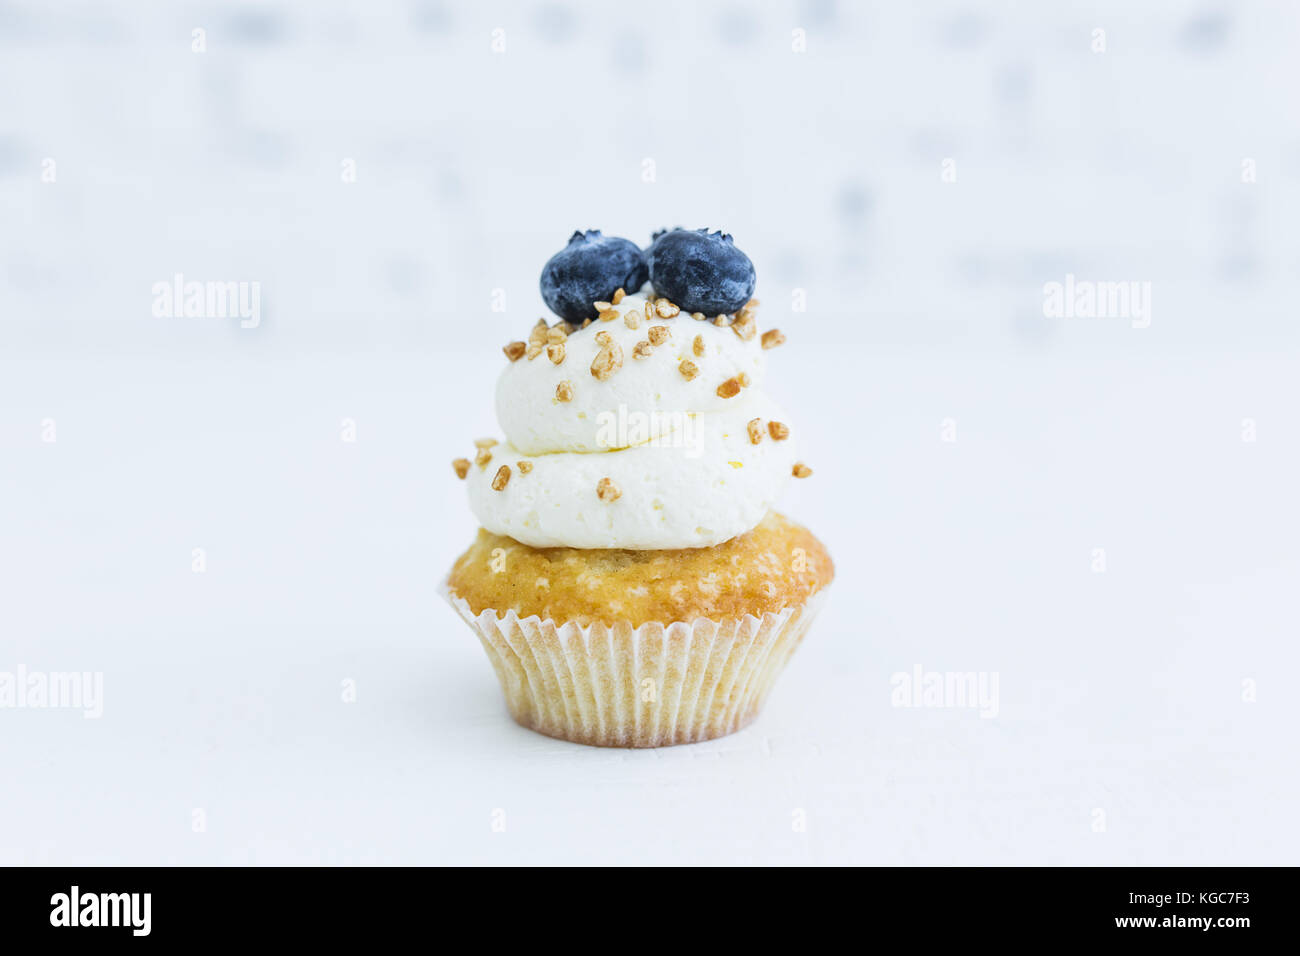 Honey capcake with mascarpone cream with blueberries and nuts. White background. - Stock Image